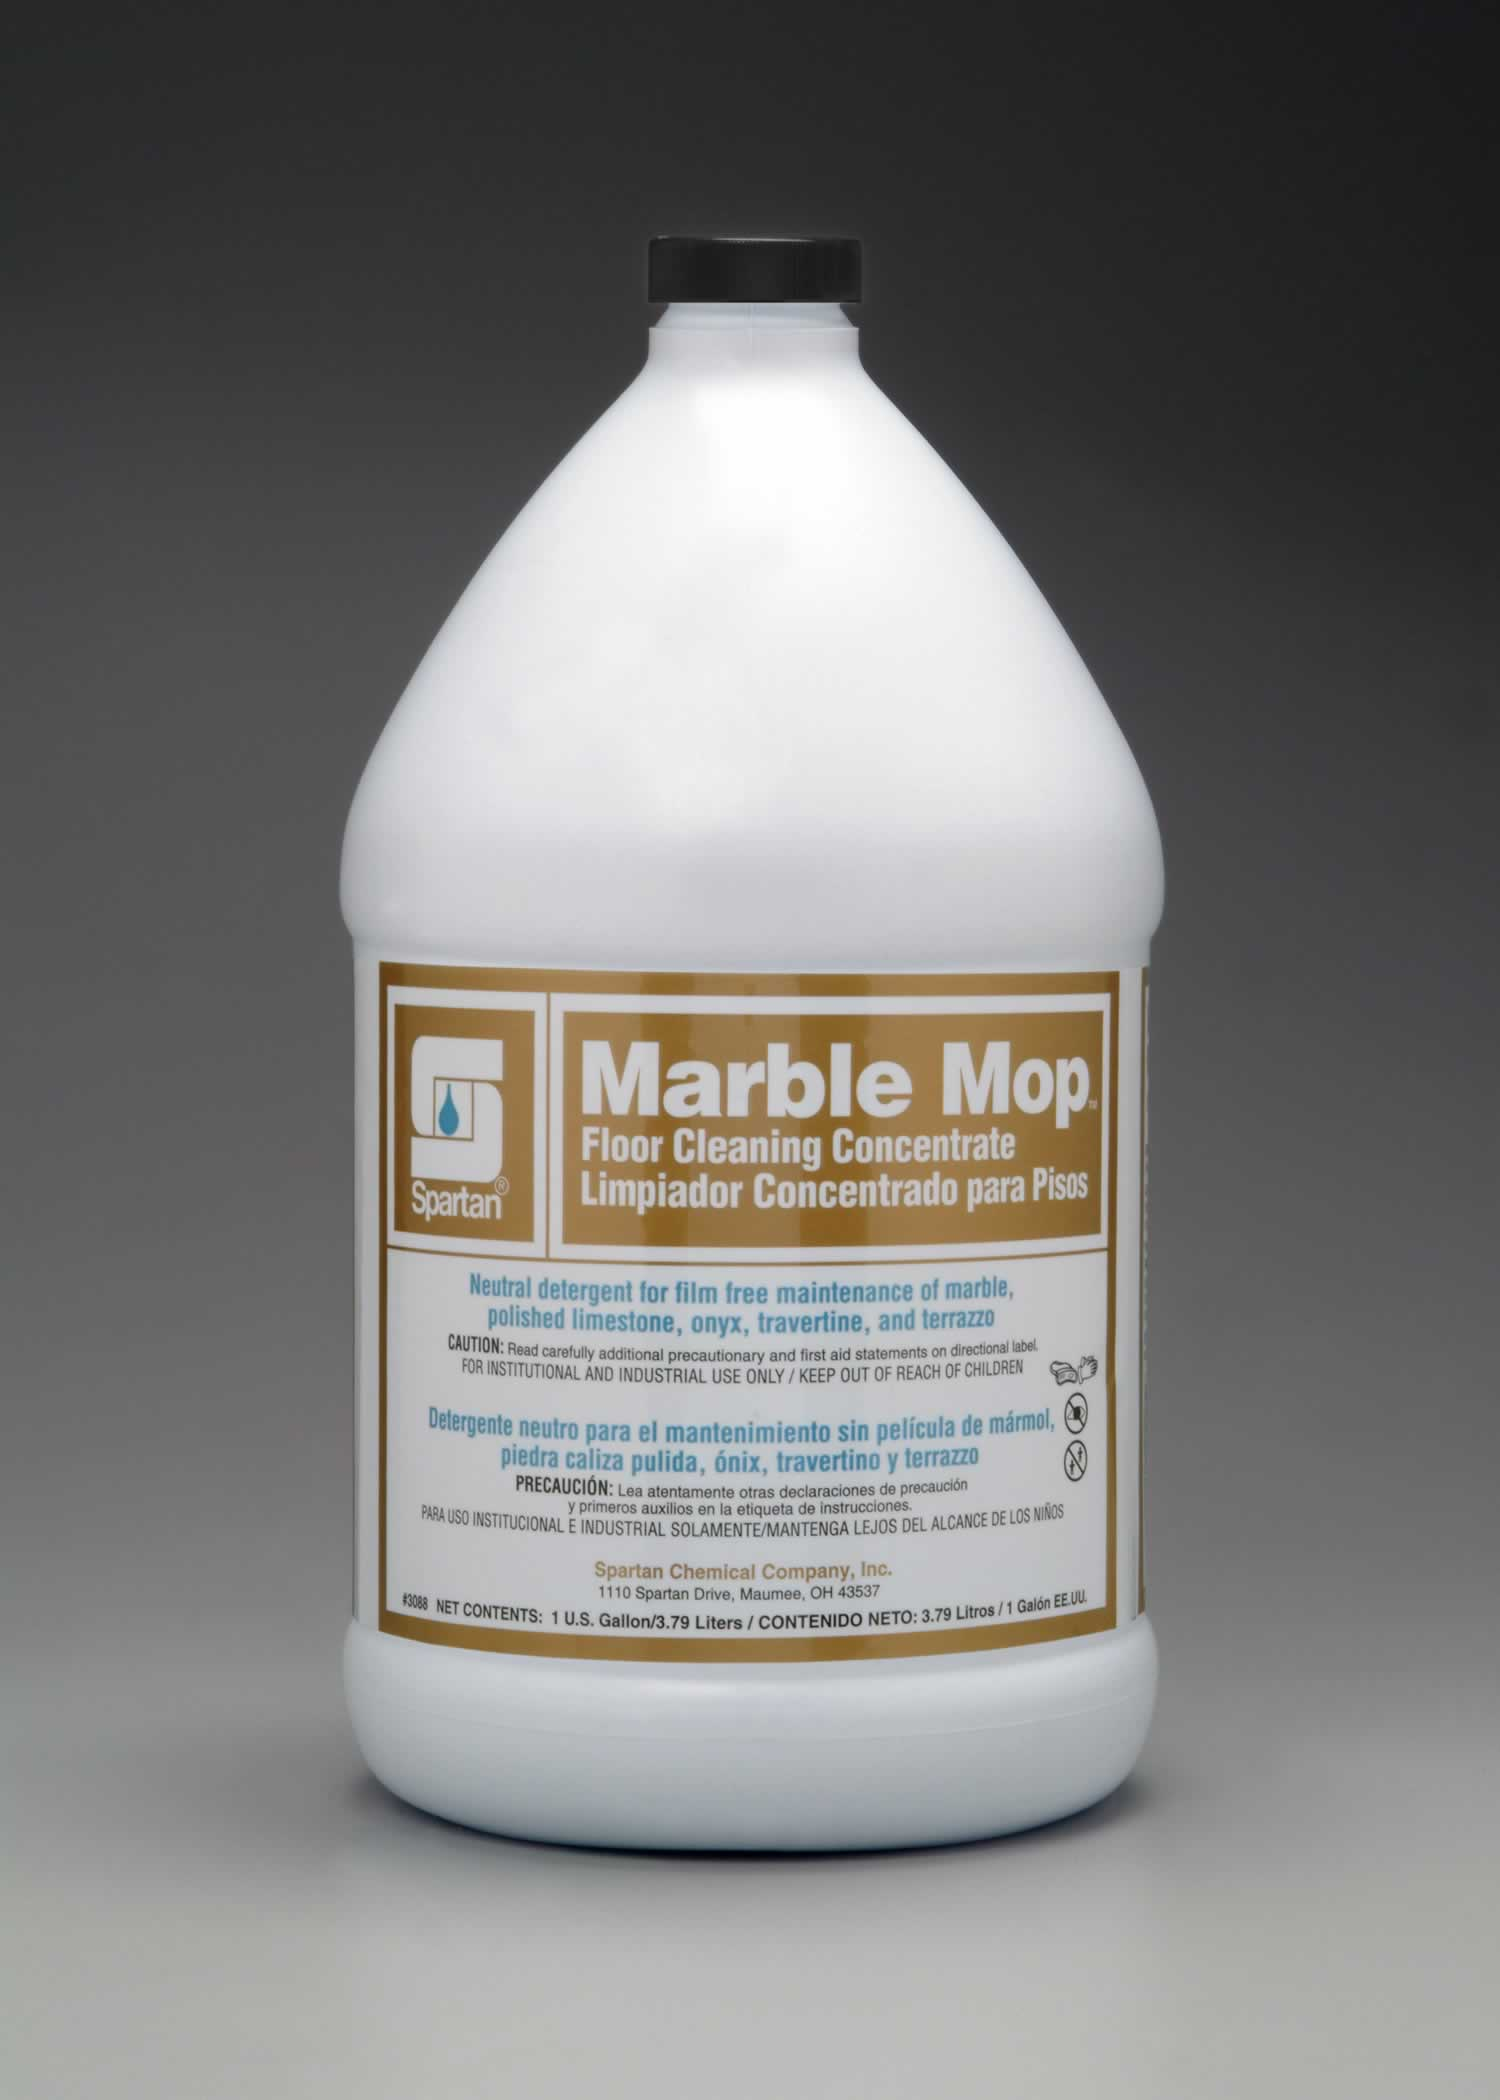 Marble Floor Cleaning Polishing Sealing Weybridge Surrey: Floor Cleaning Equipment & Floor Cleaning Chemicals